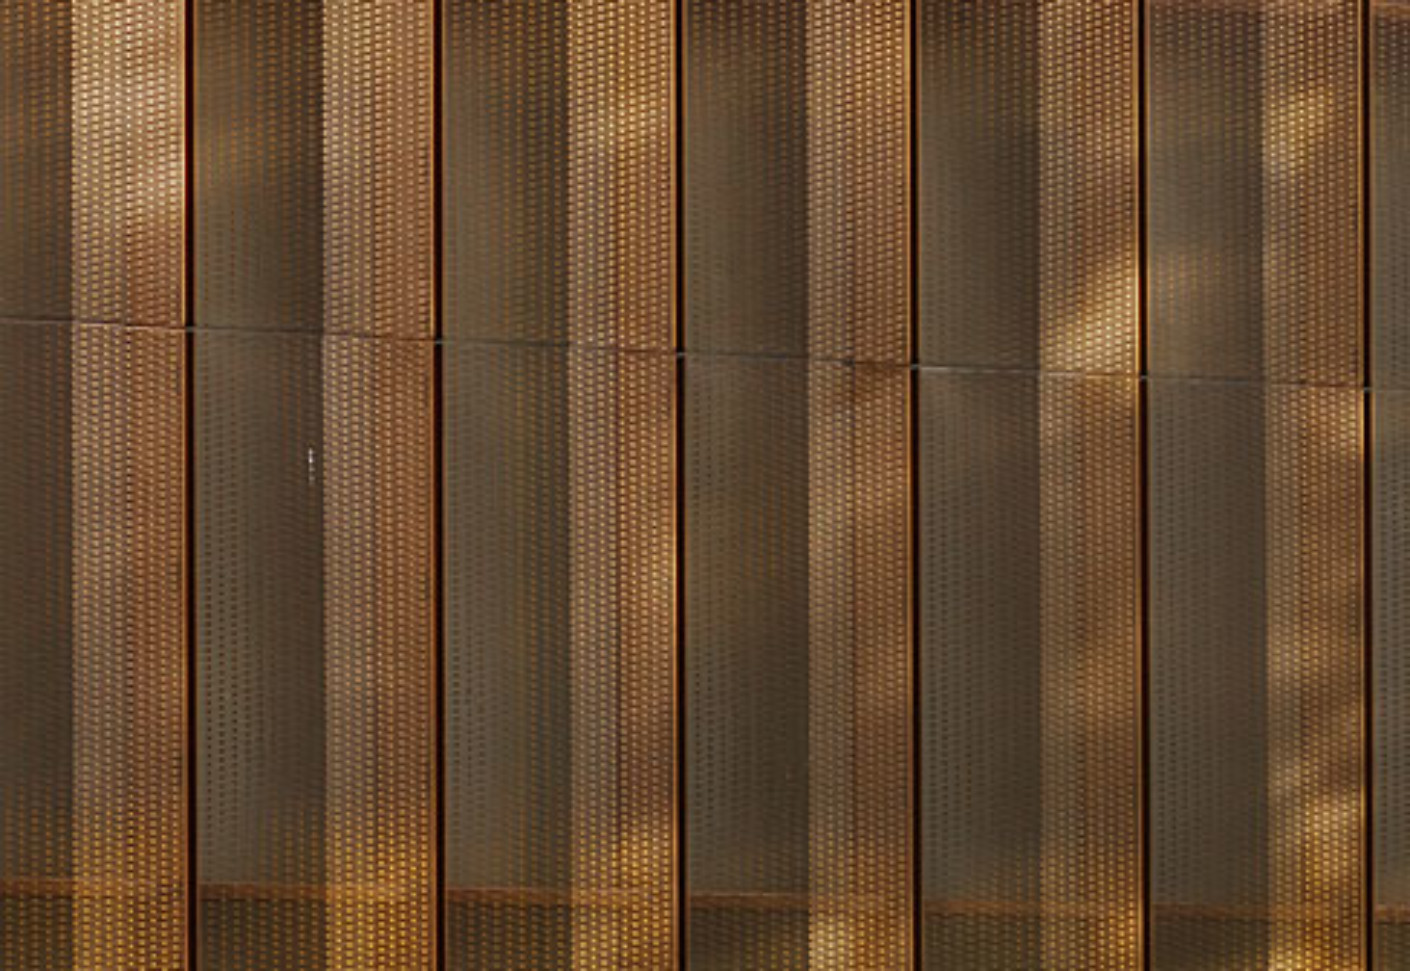 Metallic Wall Paneling : Tecu bronze punch slot perforation villa vauban by kme